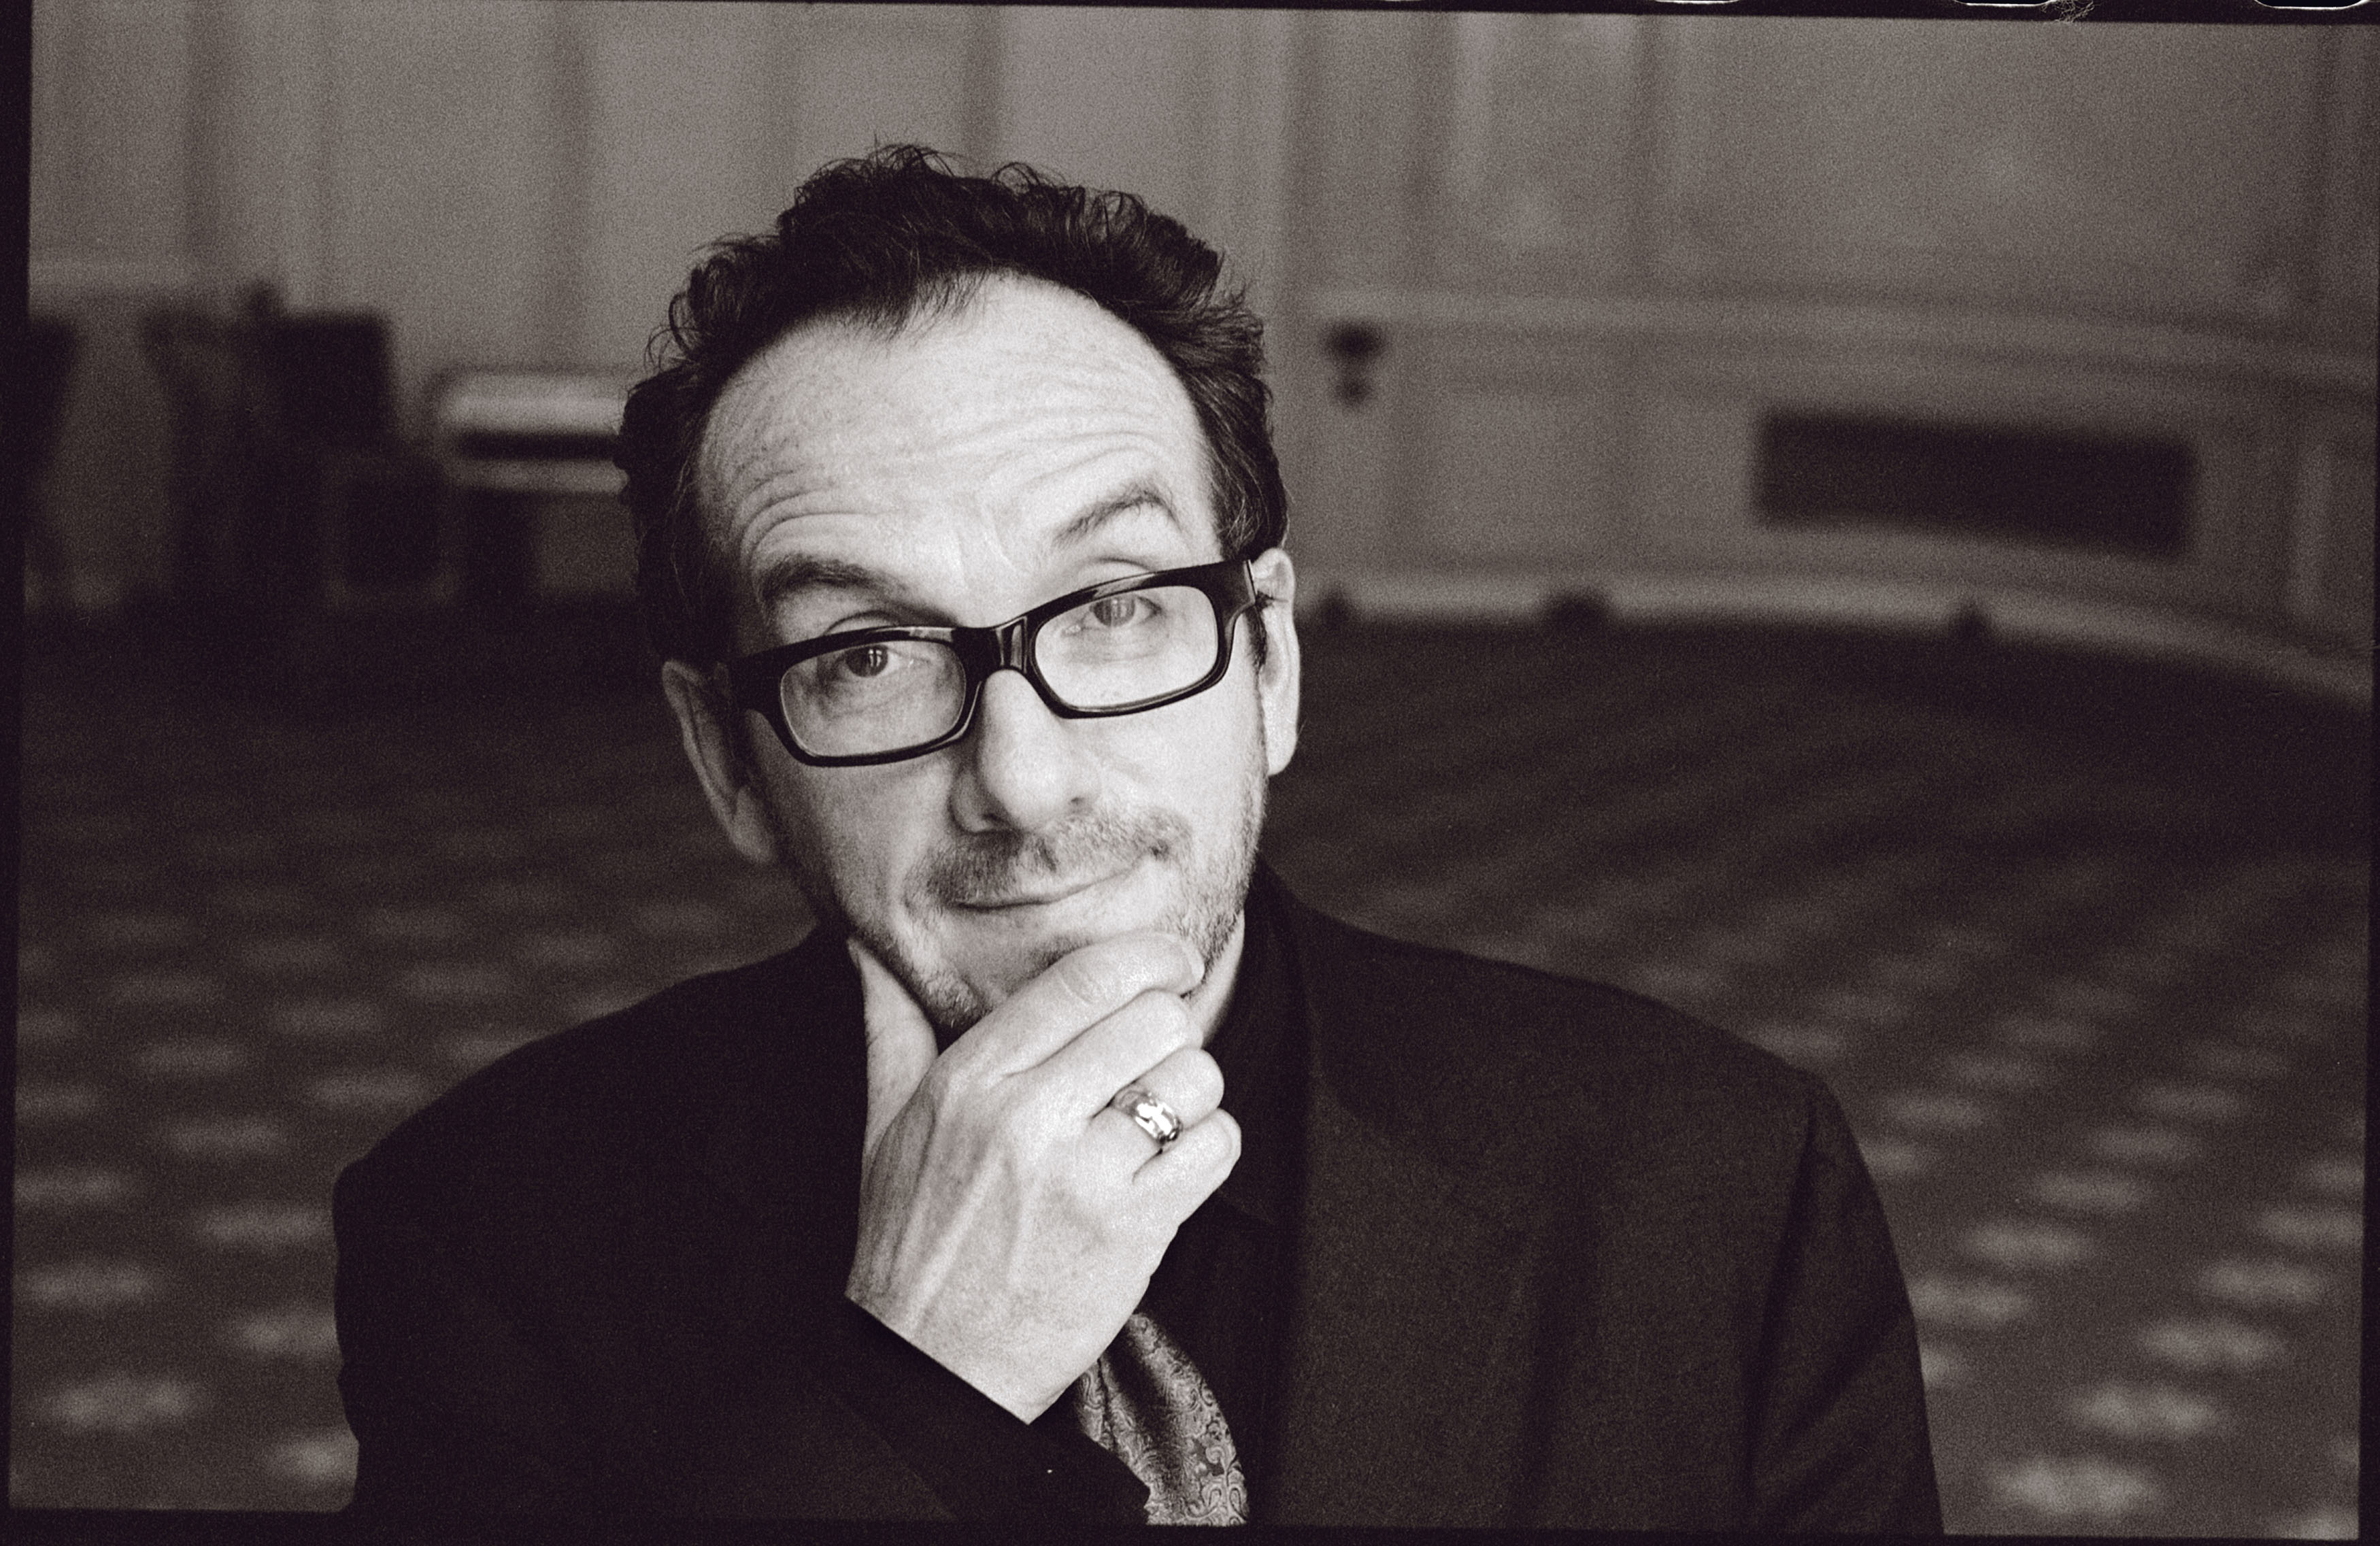 Elvis Costello's 'Live at the El Mocambo' to kick off 'The Costello Show' live CD series